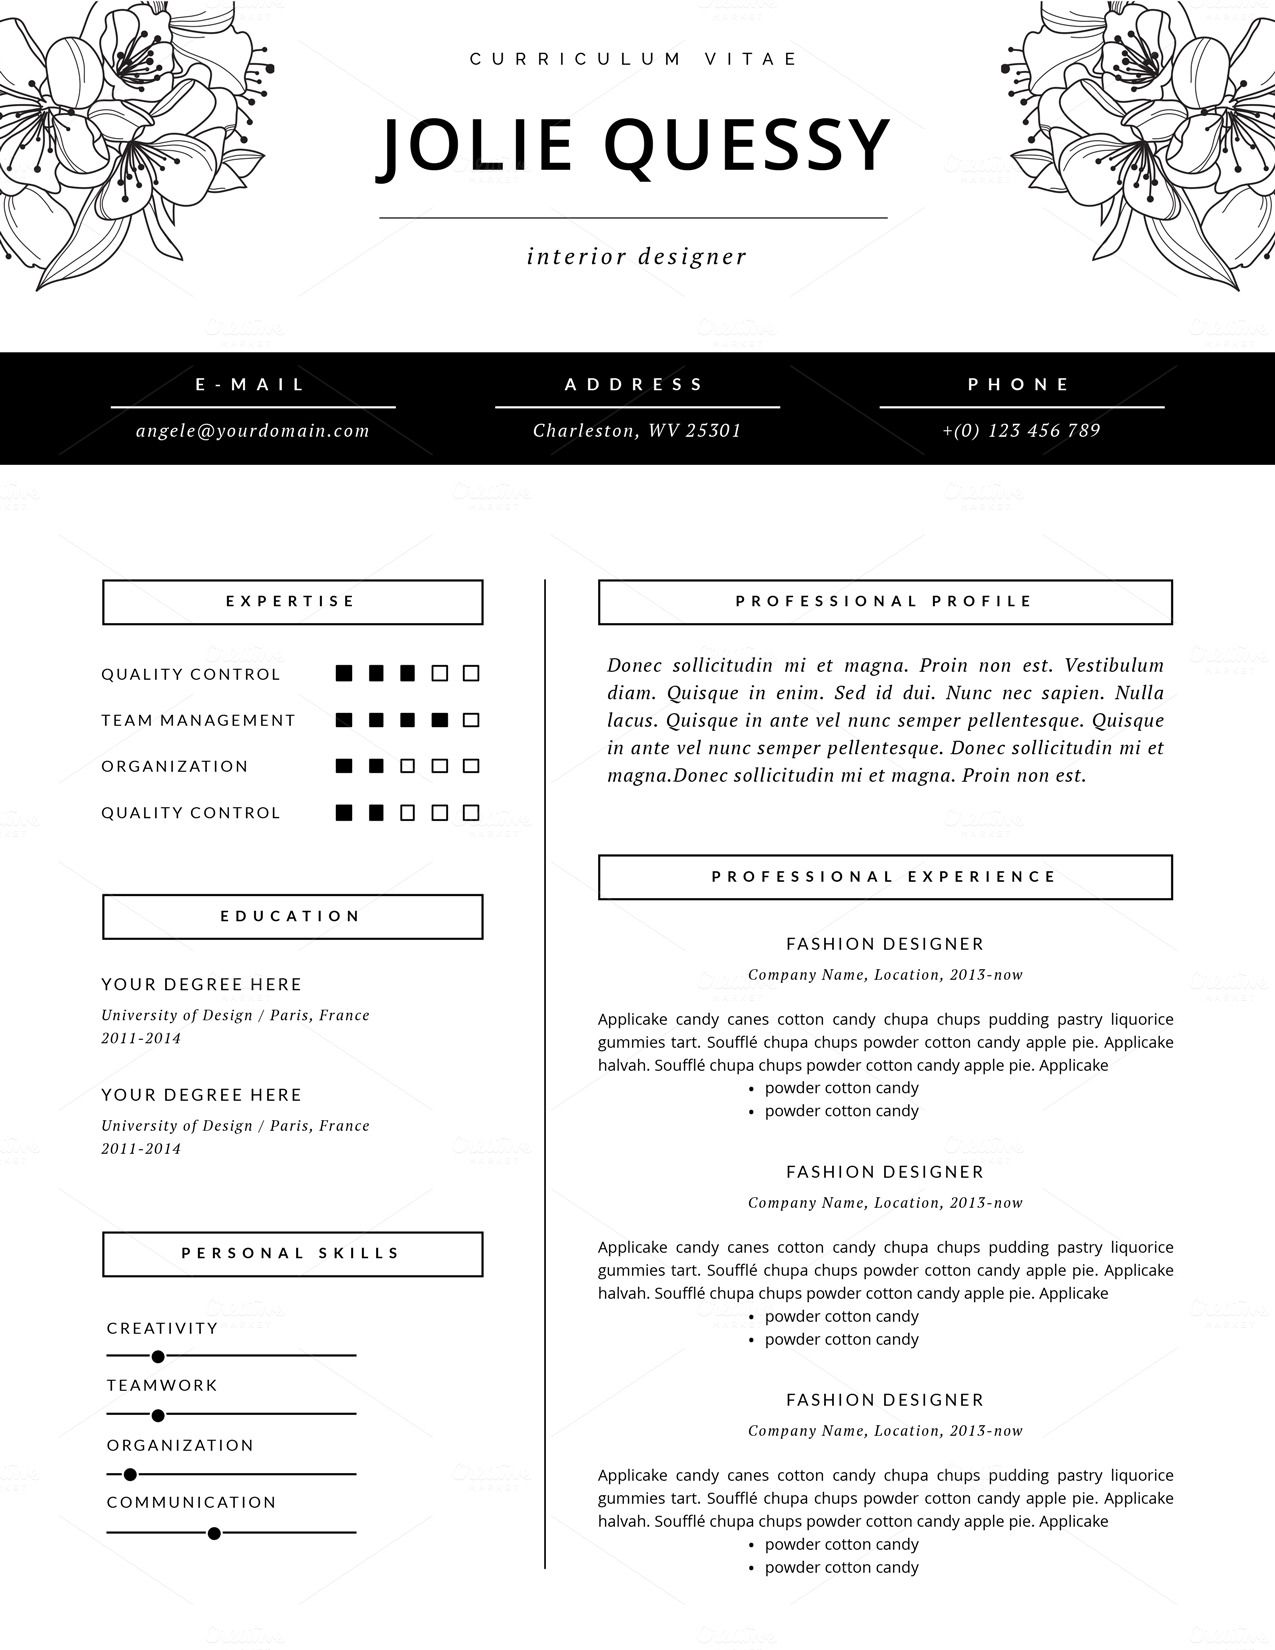 exceptionnel Fashion Resume Template | CV by This Paper Fox on Creative Market